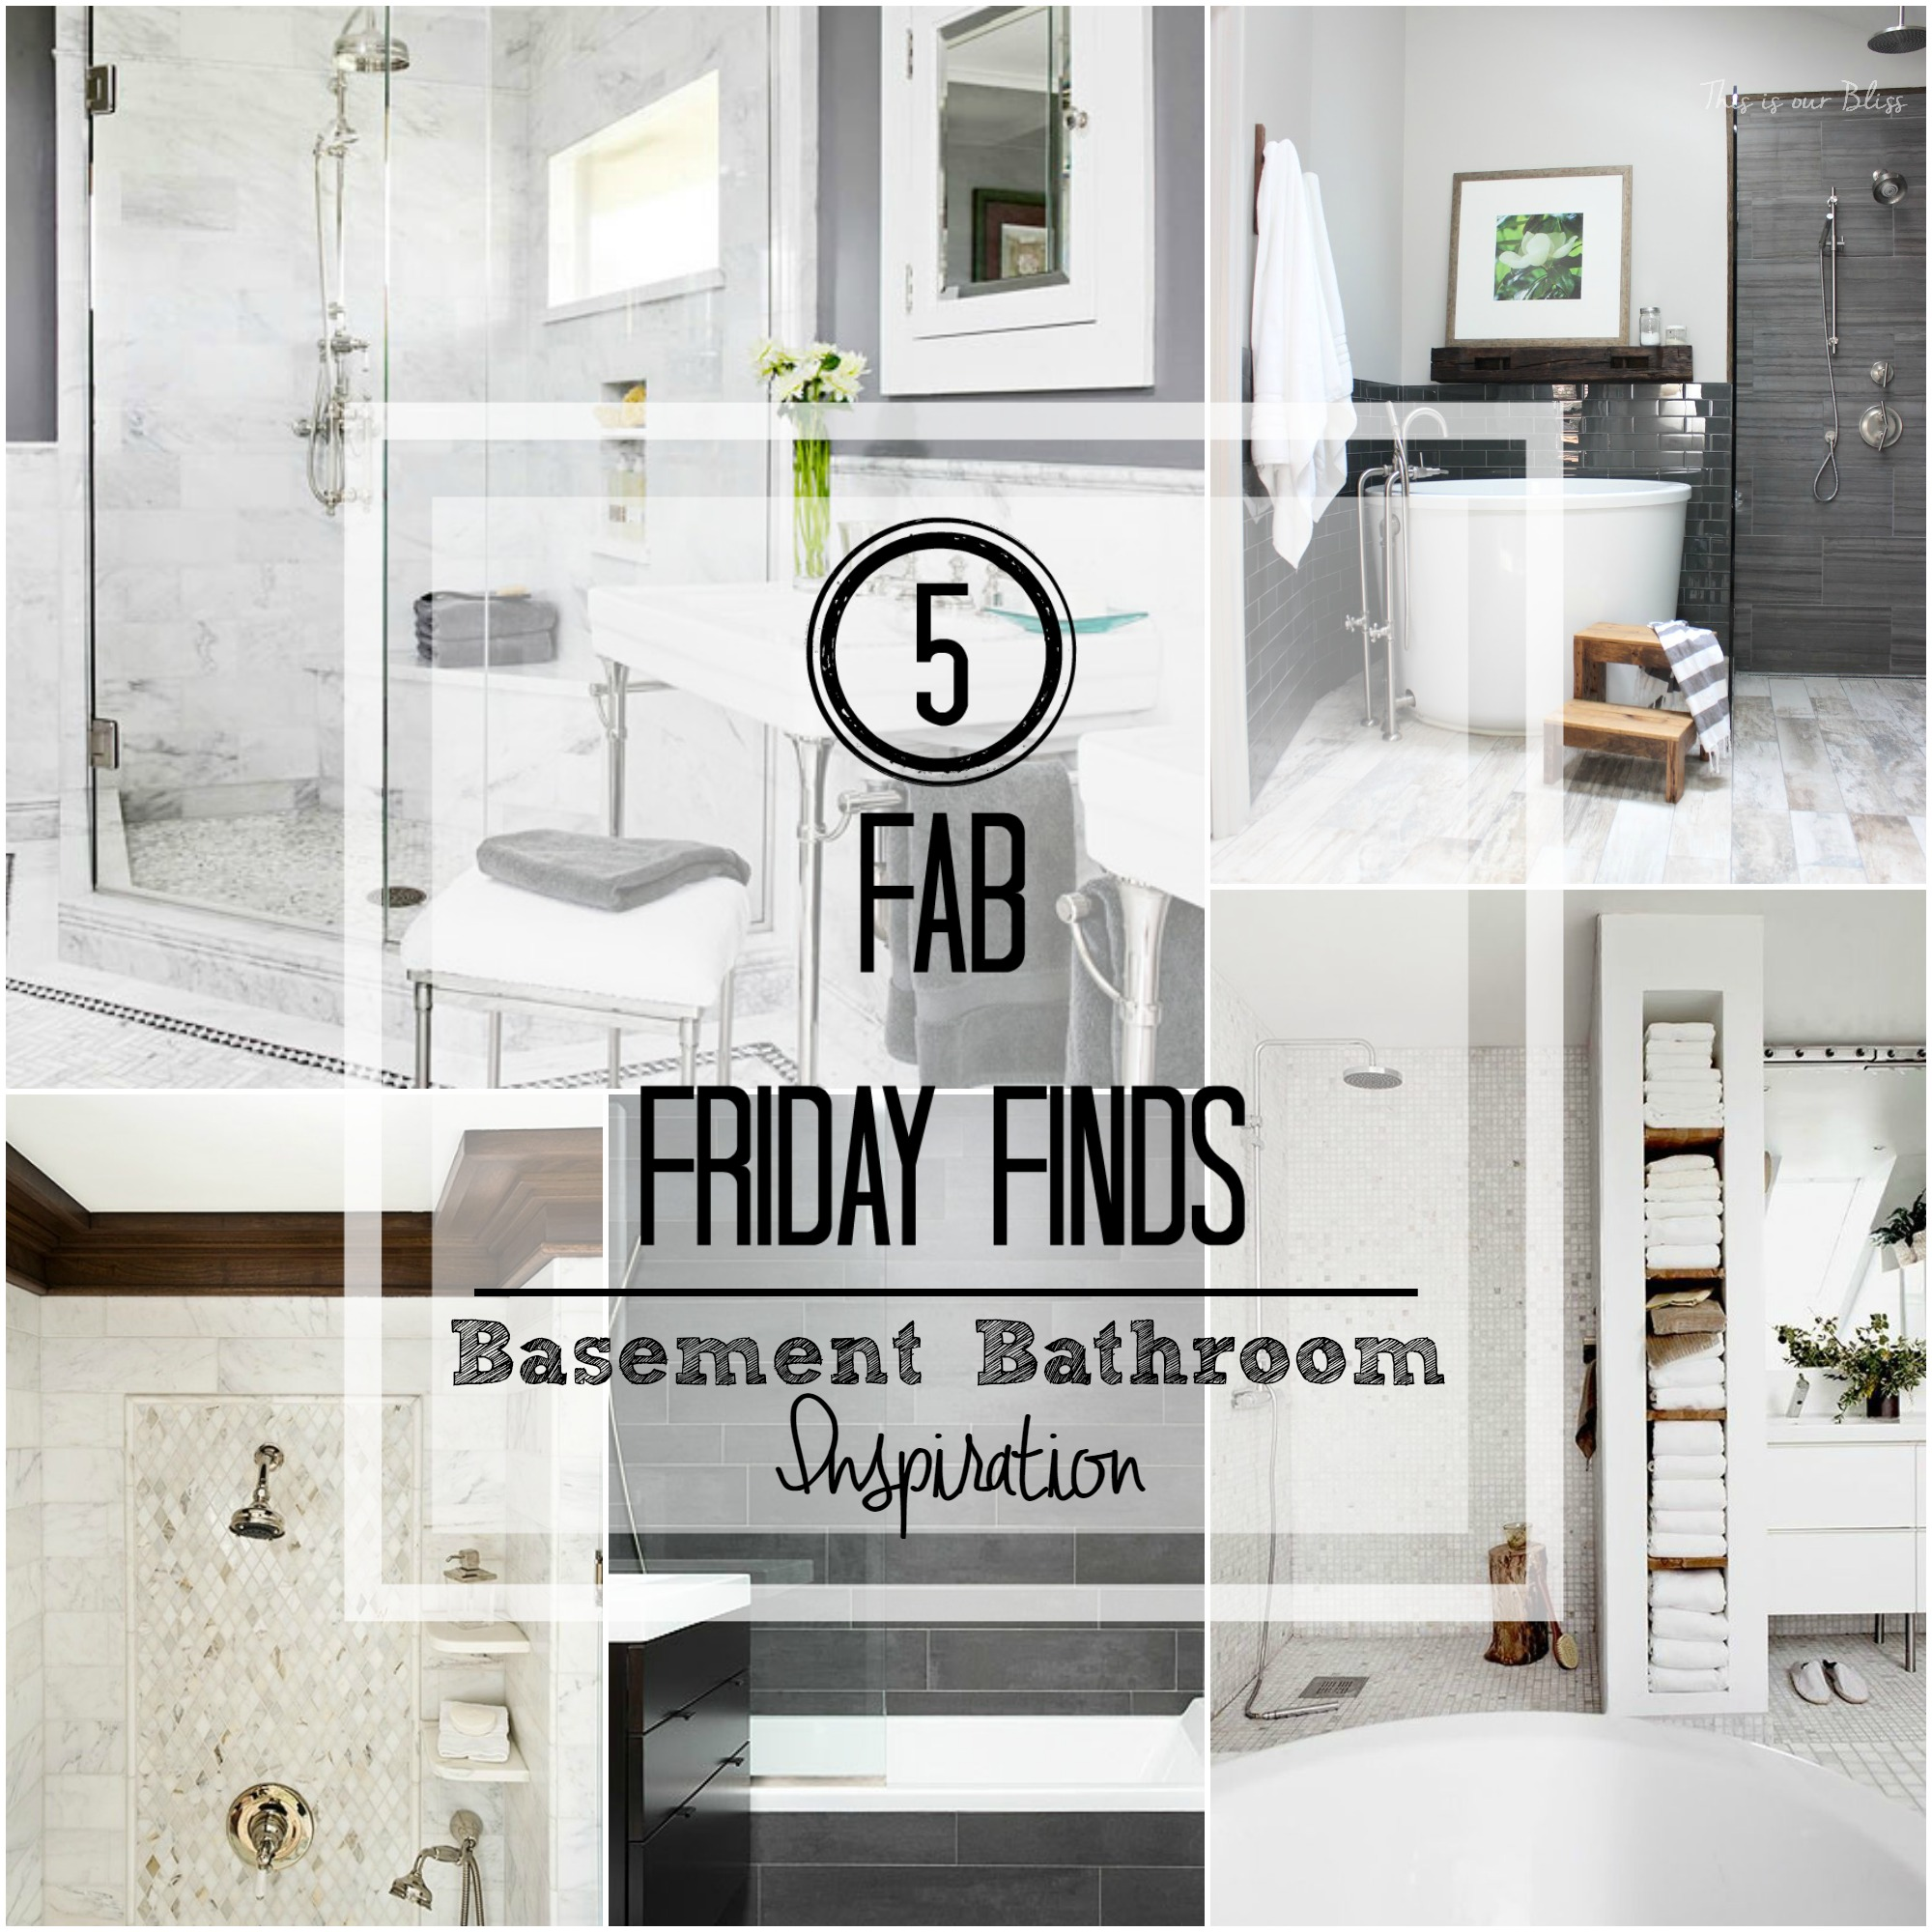 Bathroom Fixtures List 5 fab friday finds [basement bath inspiration] - this is our bliss